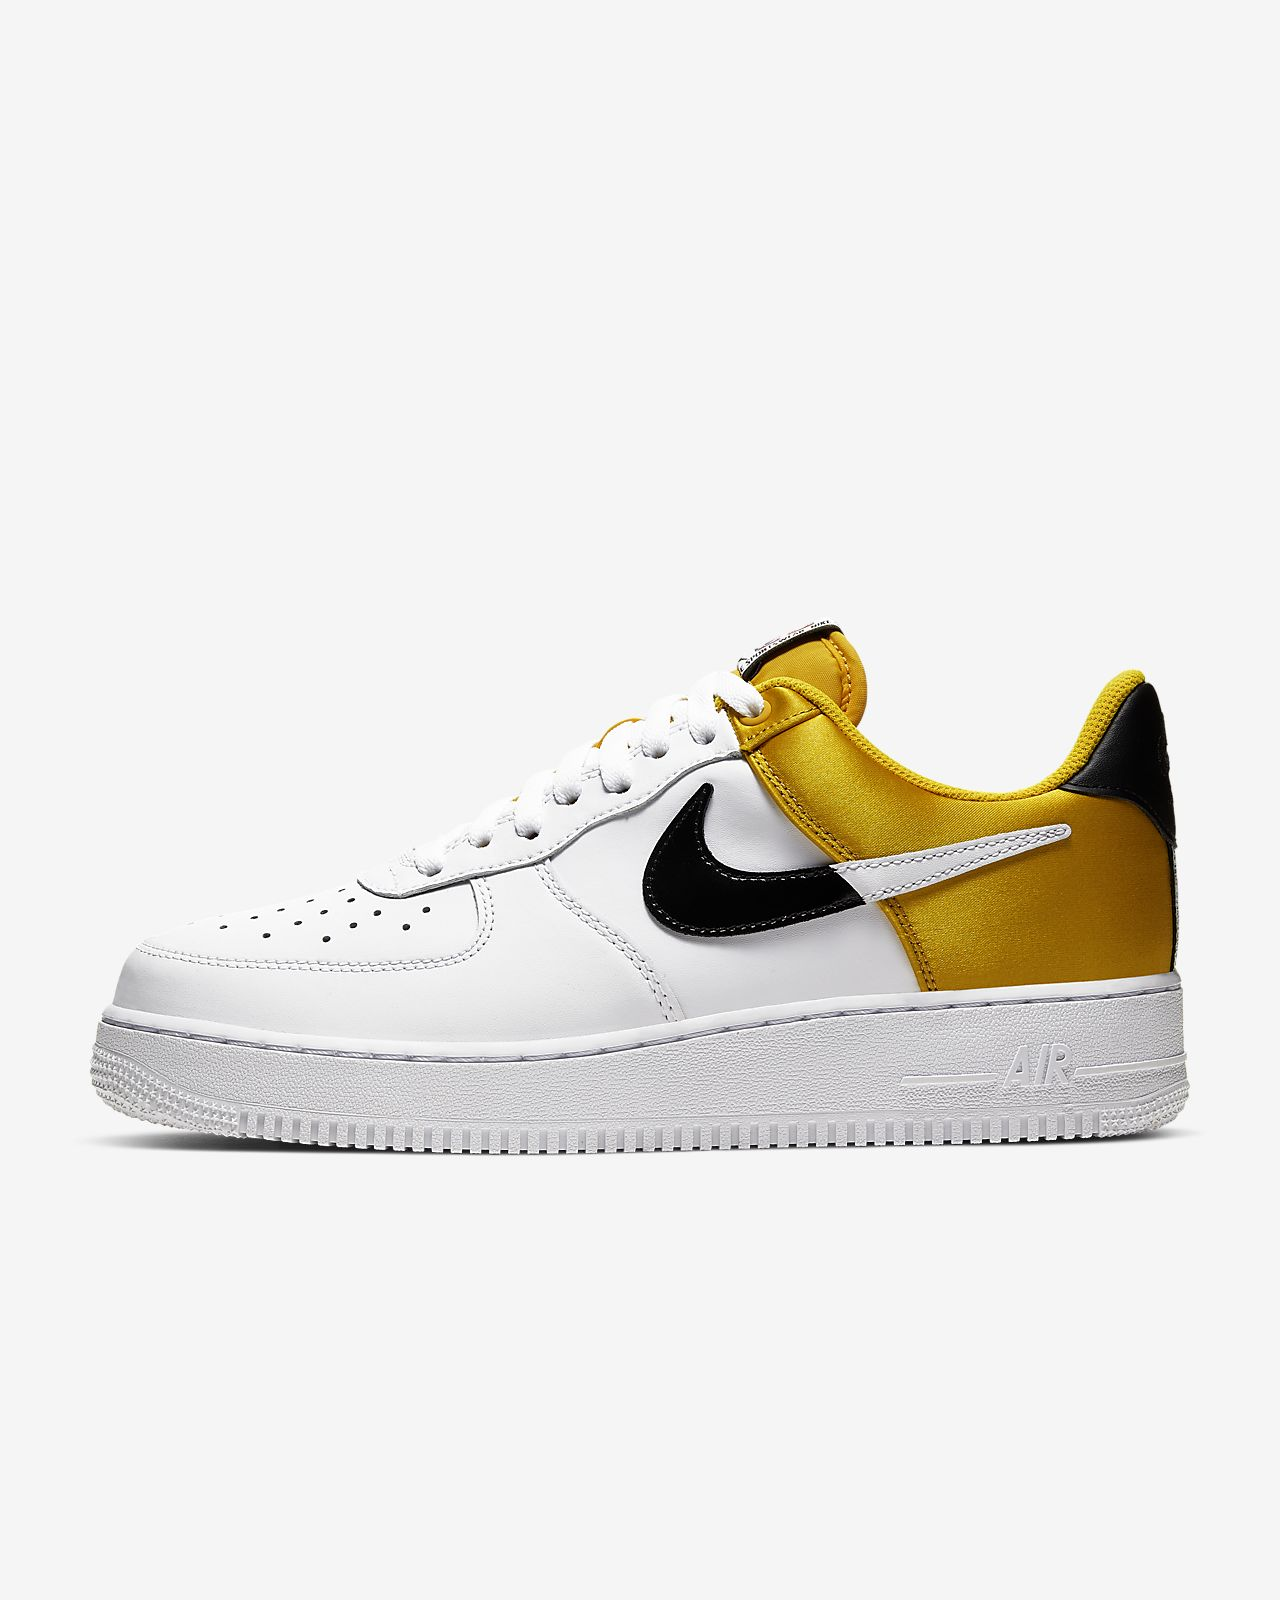 air force one hombre amarillo